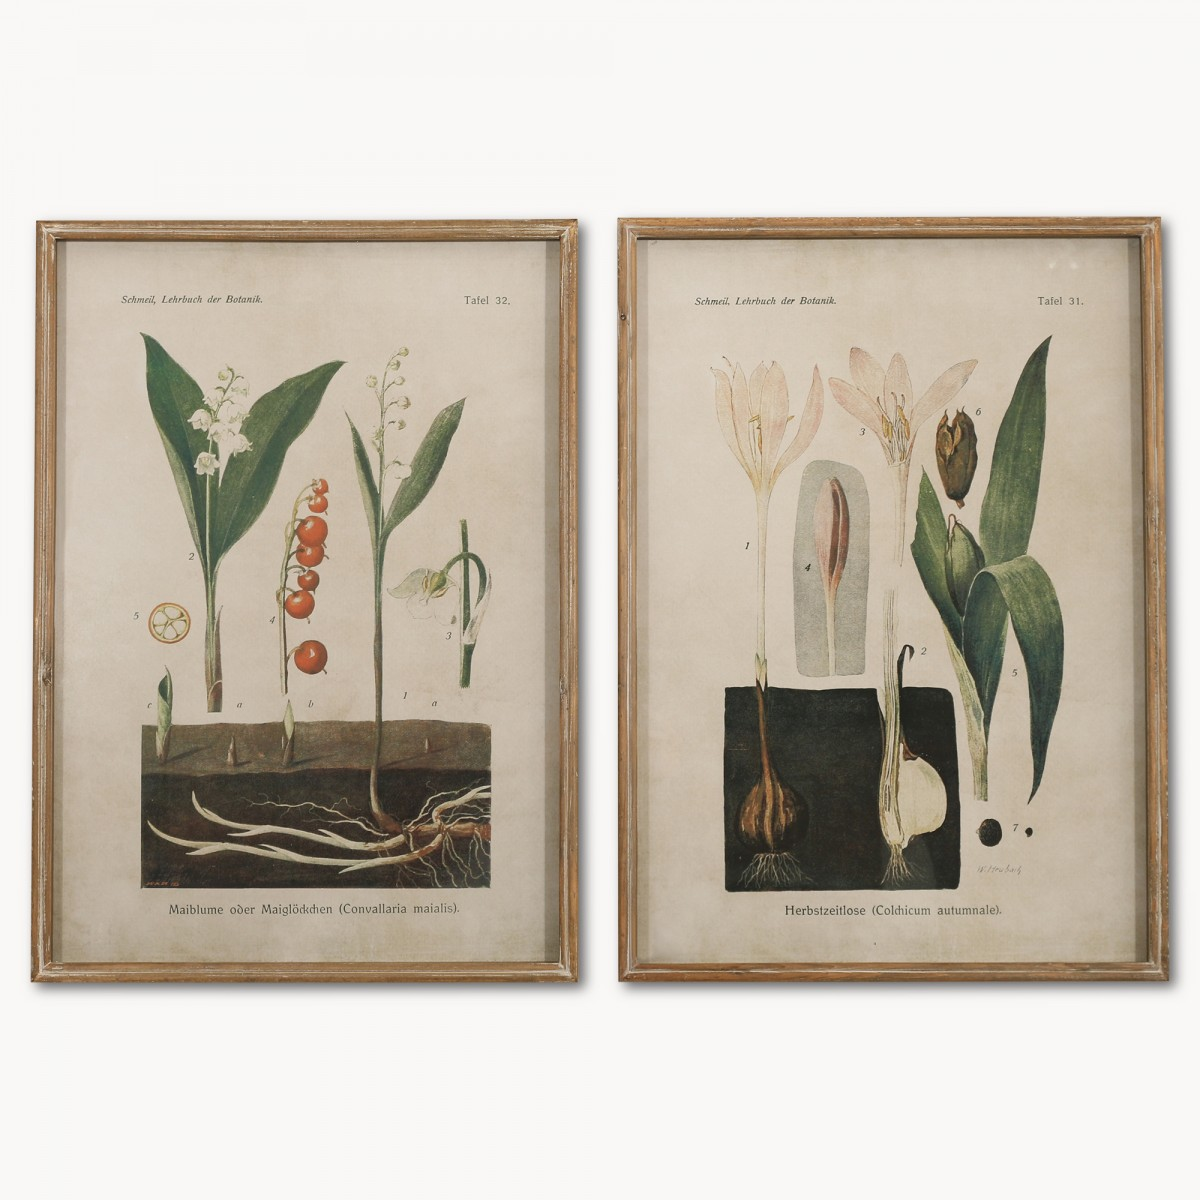 Vintage garden ideas and inspiration. Oldhouseintheshires. #vintagegarden #botanicalprints